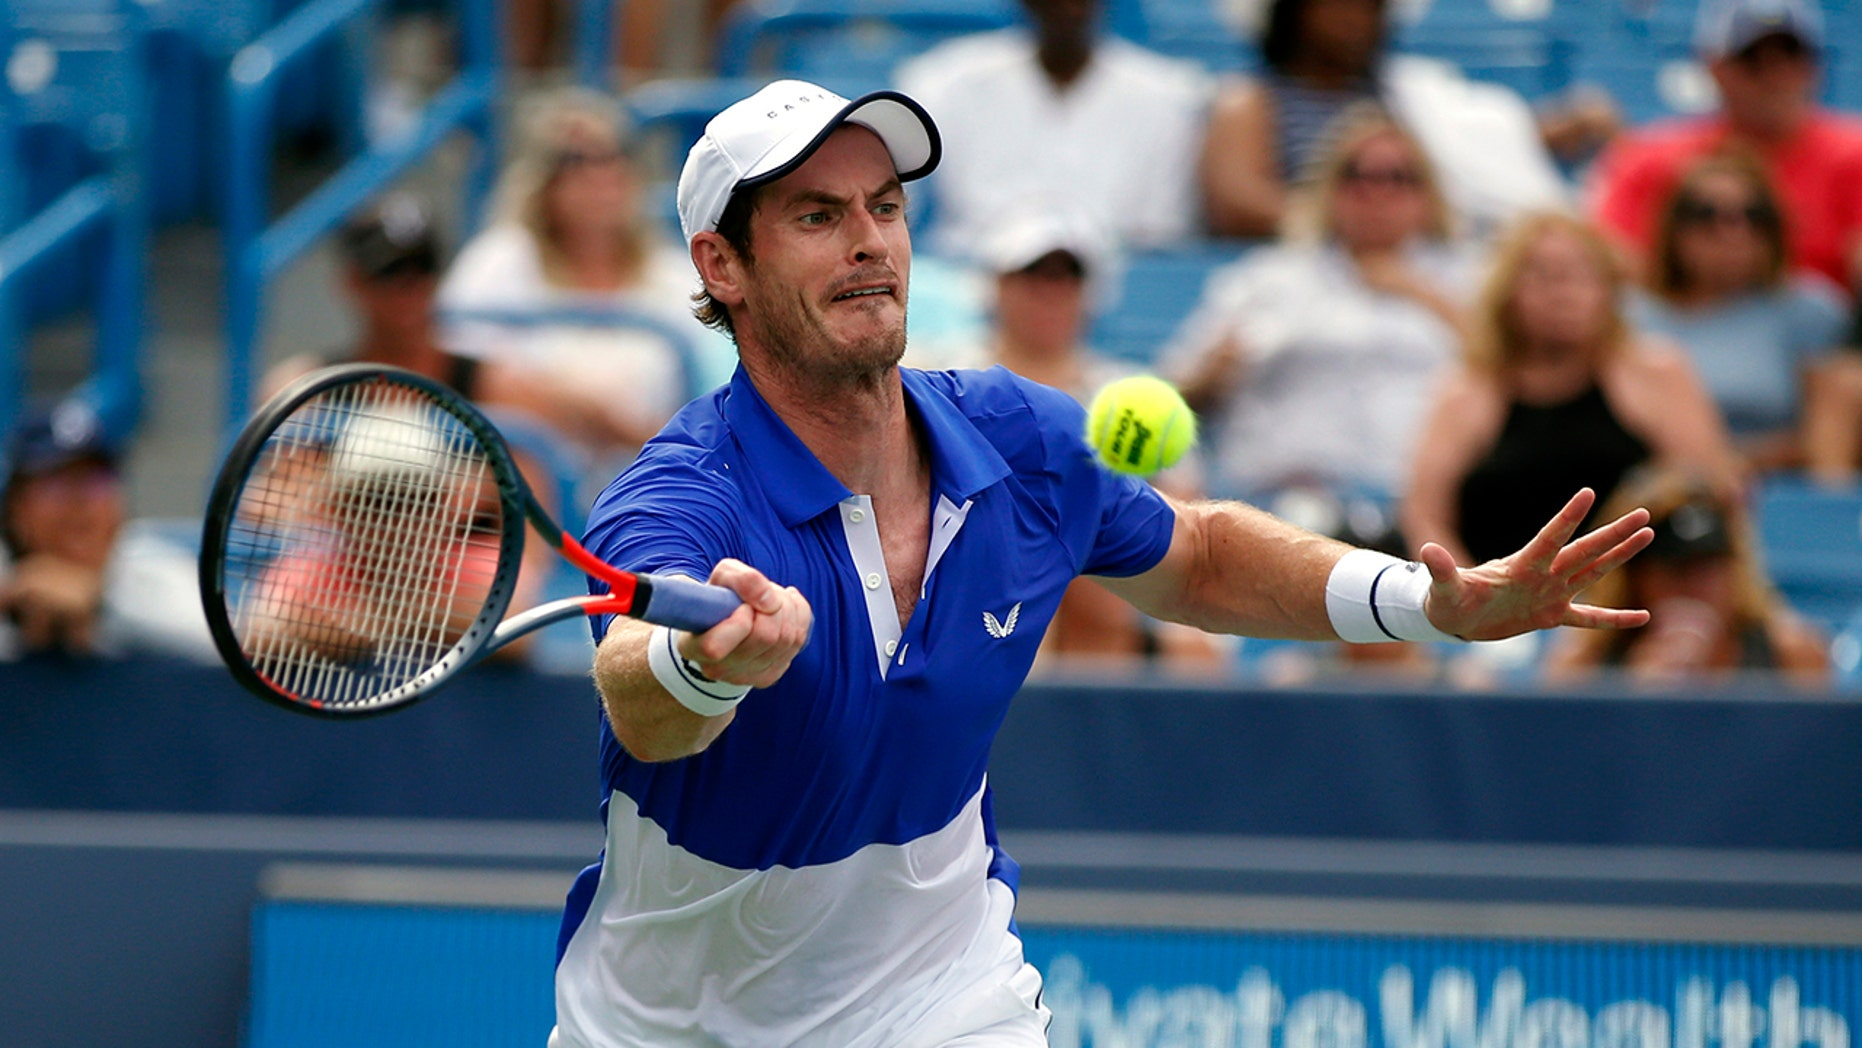 Westlake Legal Group TEN-Andy-Murray4 Murray loses in first round at Cincinnati in singles return fox-news/sports/tennis fnc/sports fnc Associated Press article 8c97d33d-9b6e-527d-8fbe-f58f080fce7b